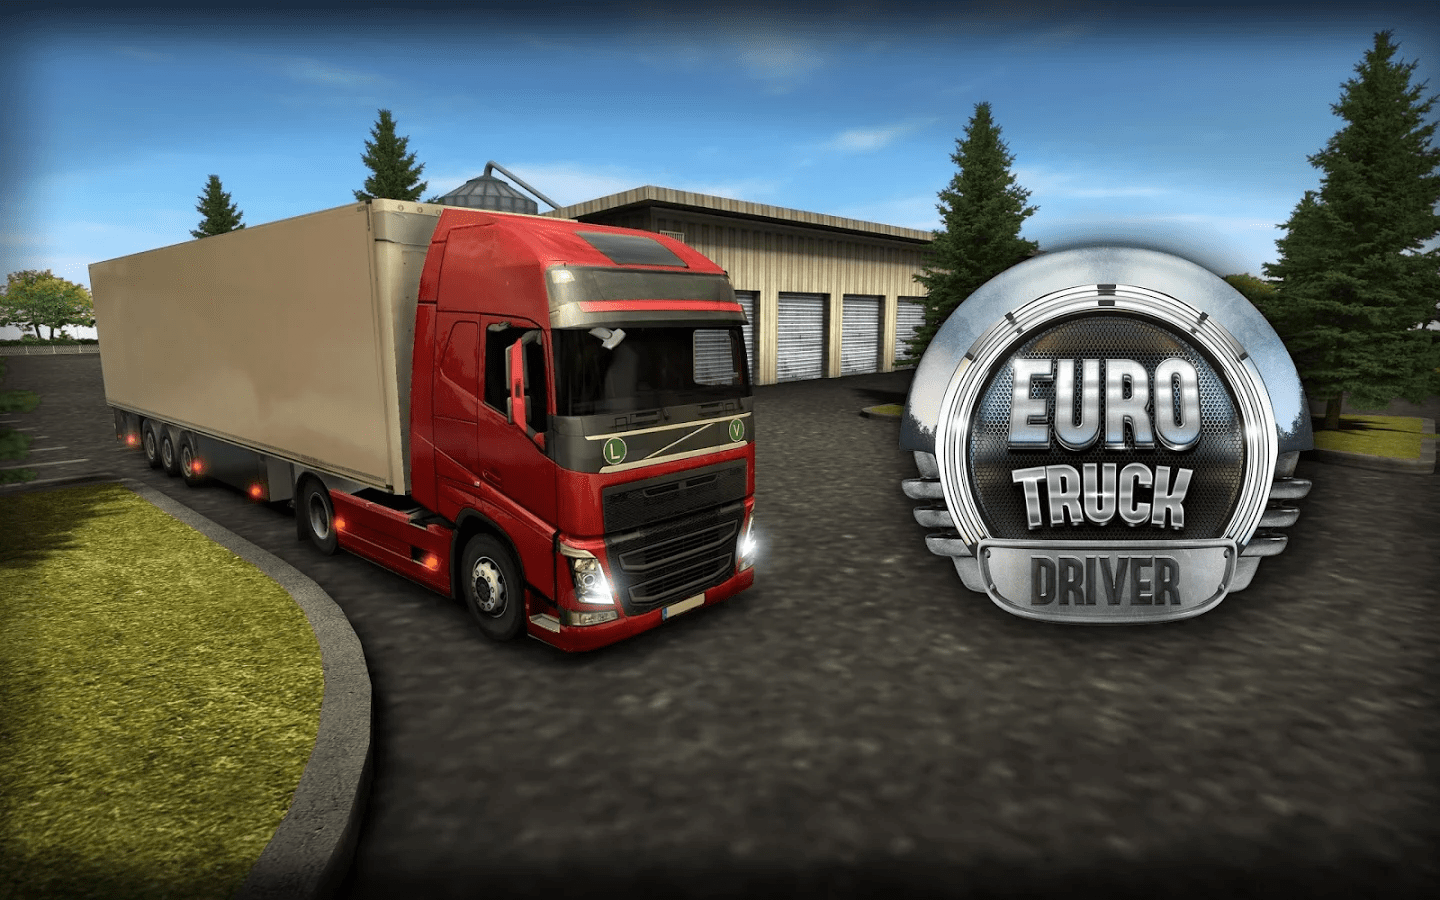 Euro Truck Driver (Simulator) - Best Driving Simulation Games For Android 2018